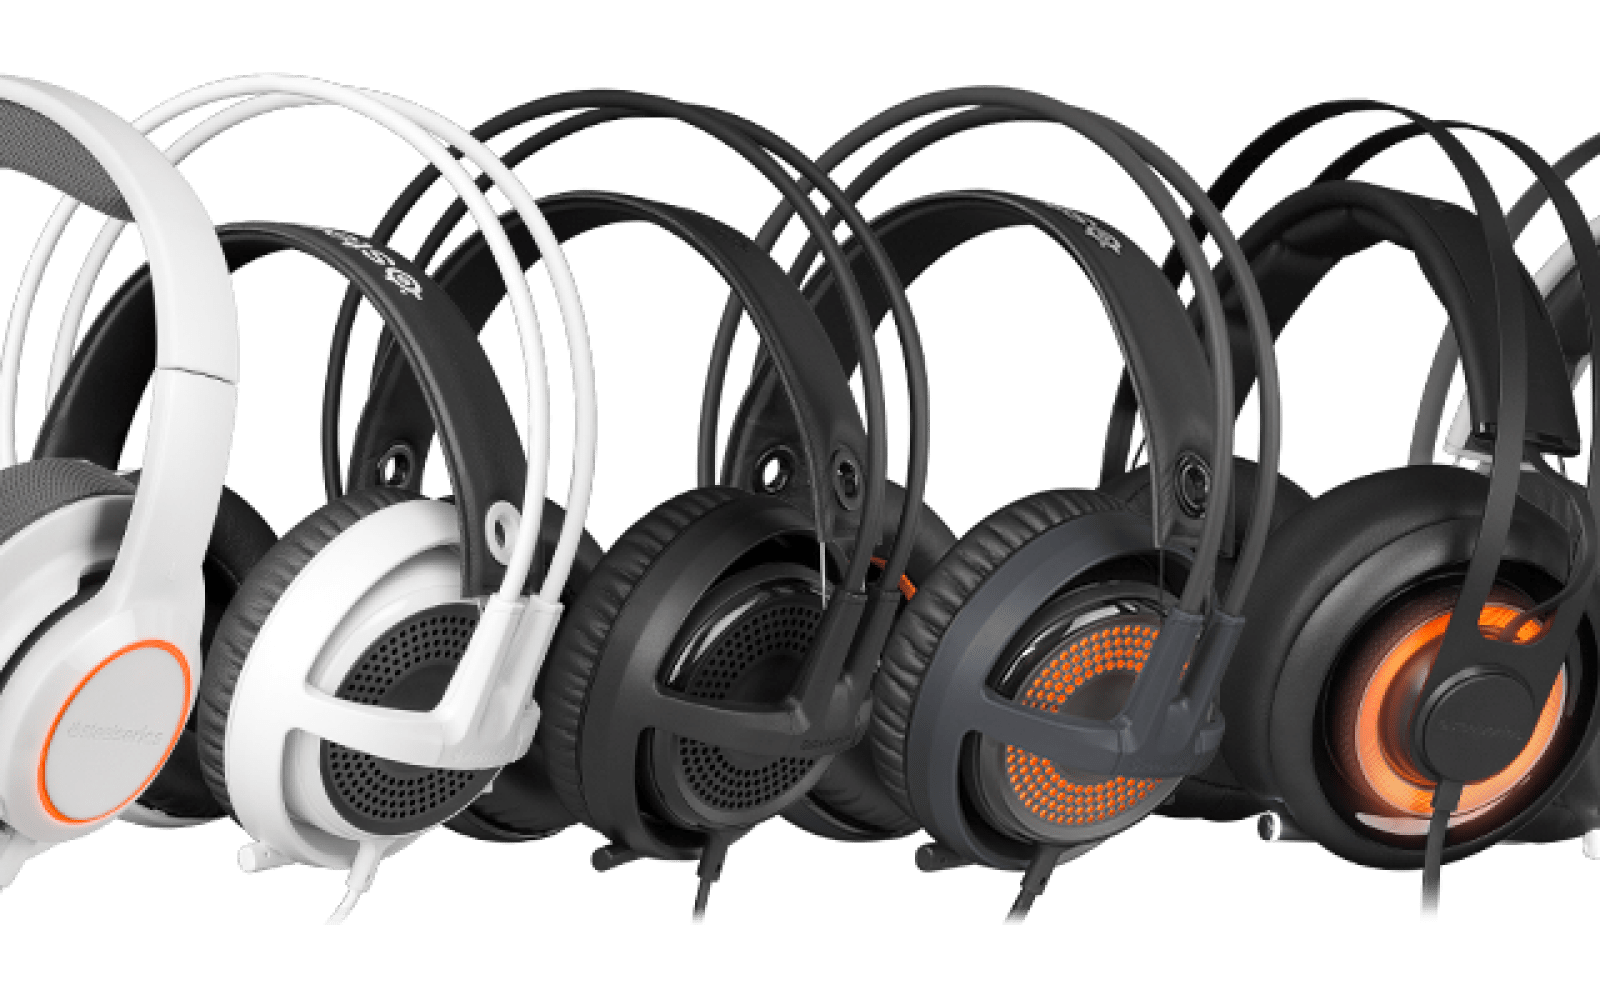 SteelSeries re-invents its Siberia line of headsets with every gamer in mind